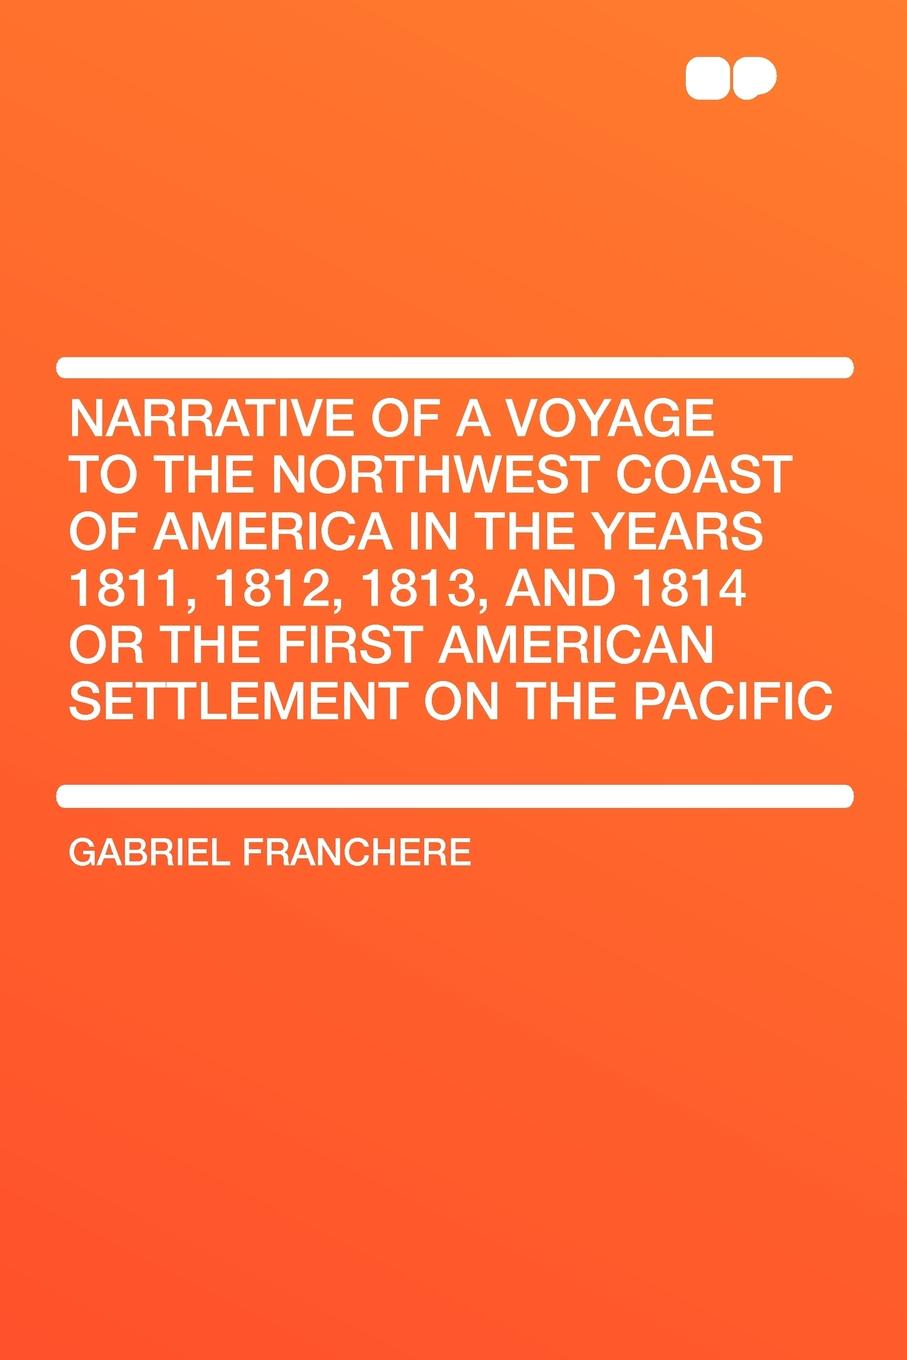 Gabriel Franchere Narrative of a Voyage to the Northwest Coast of America in the years 1811, 1812, 1813, and 1814 or the First American Settlement on the Pacific the maritime shipment of lng to northwest europe